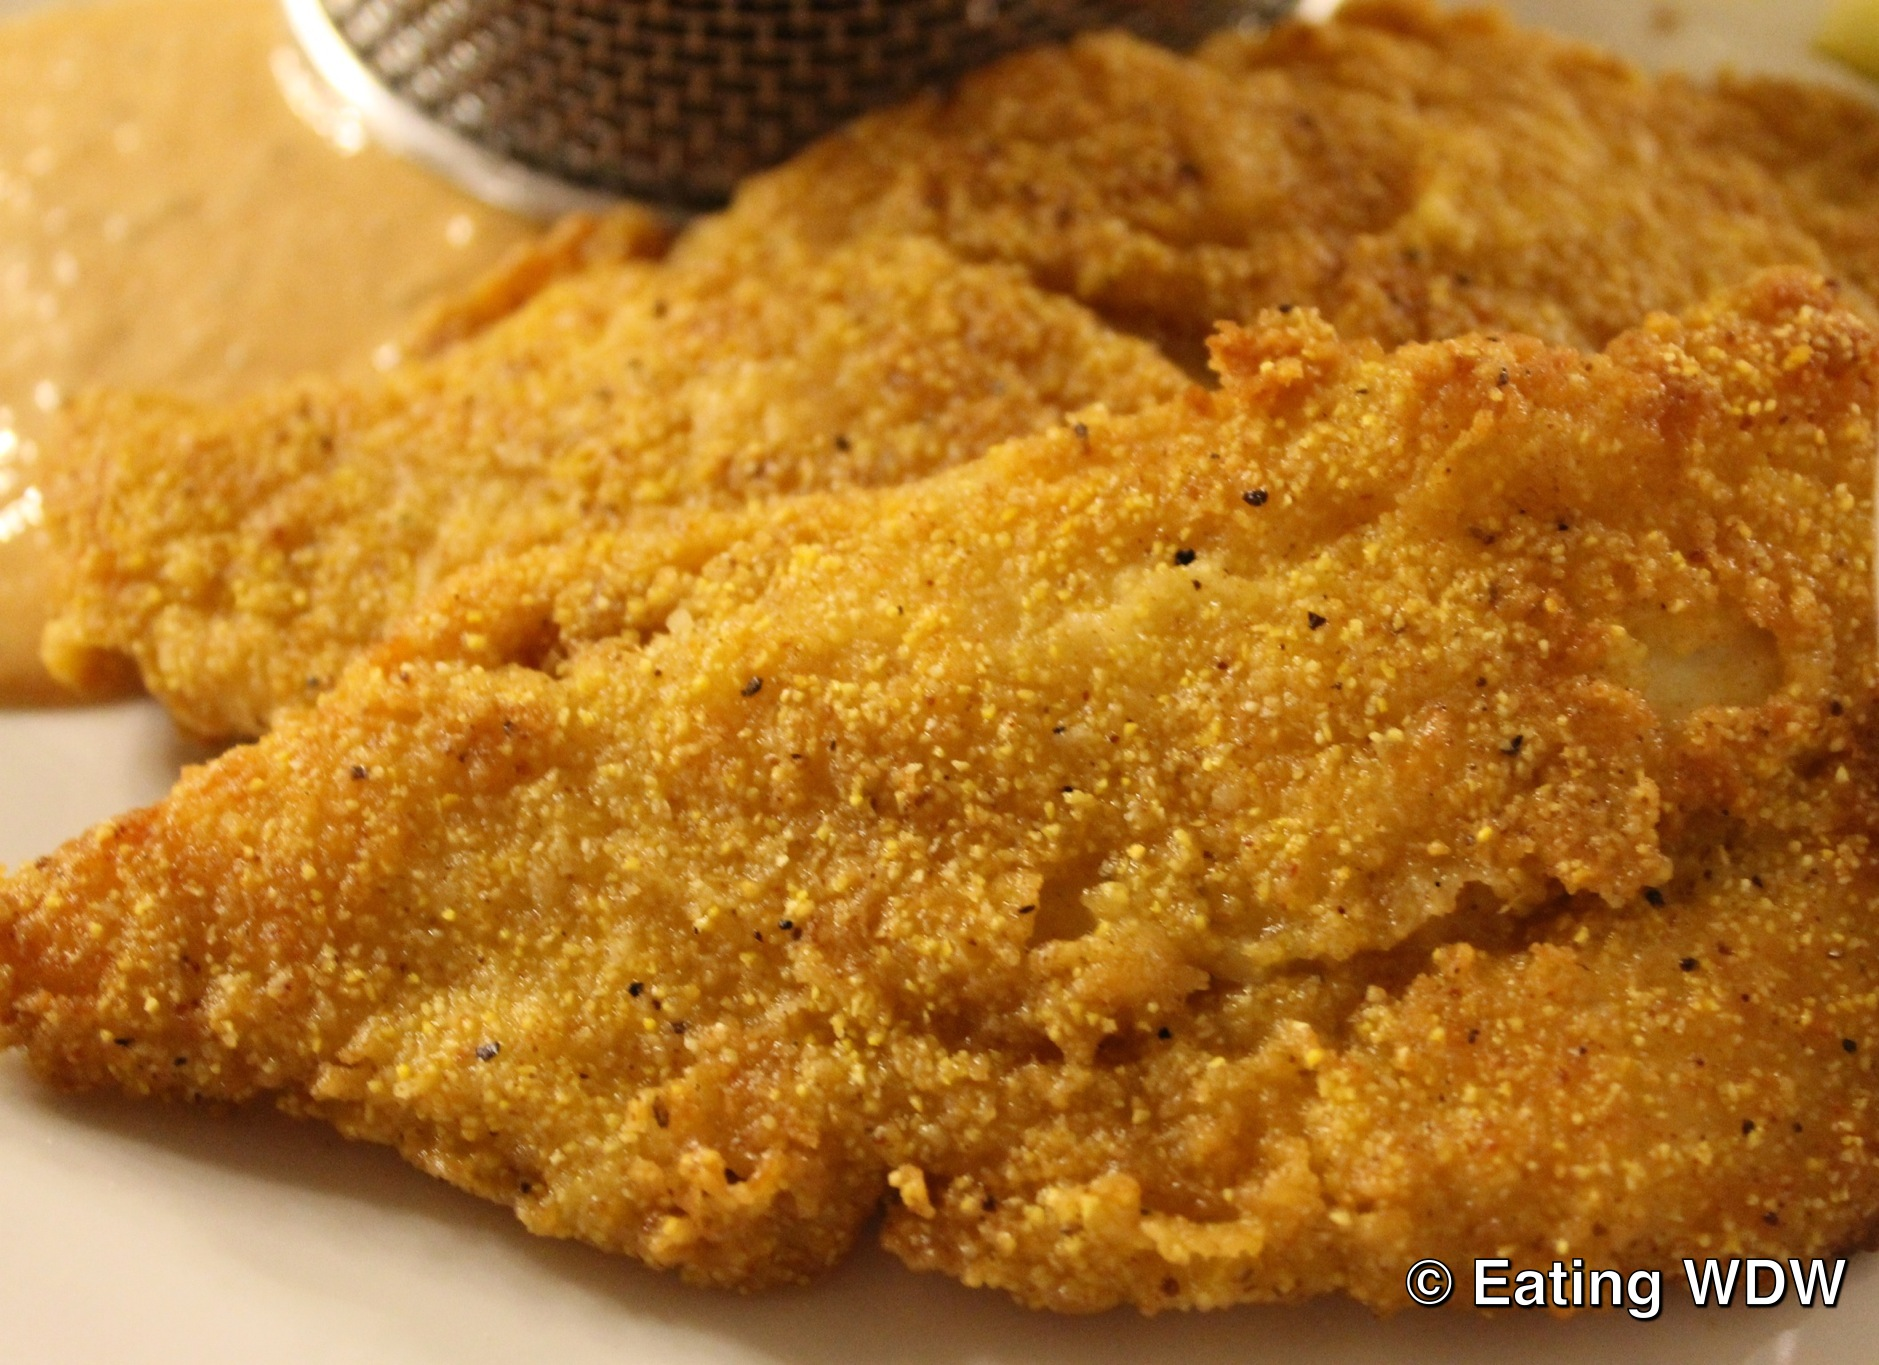 ... fried catfish fried catfish flickr photo sharing fried catfish